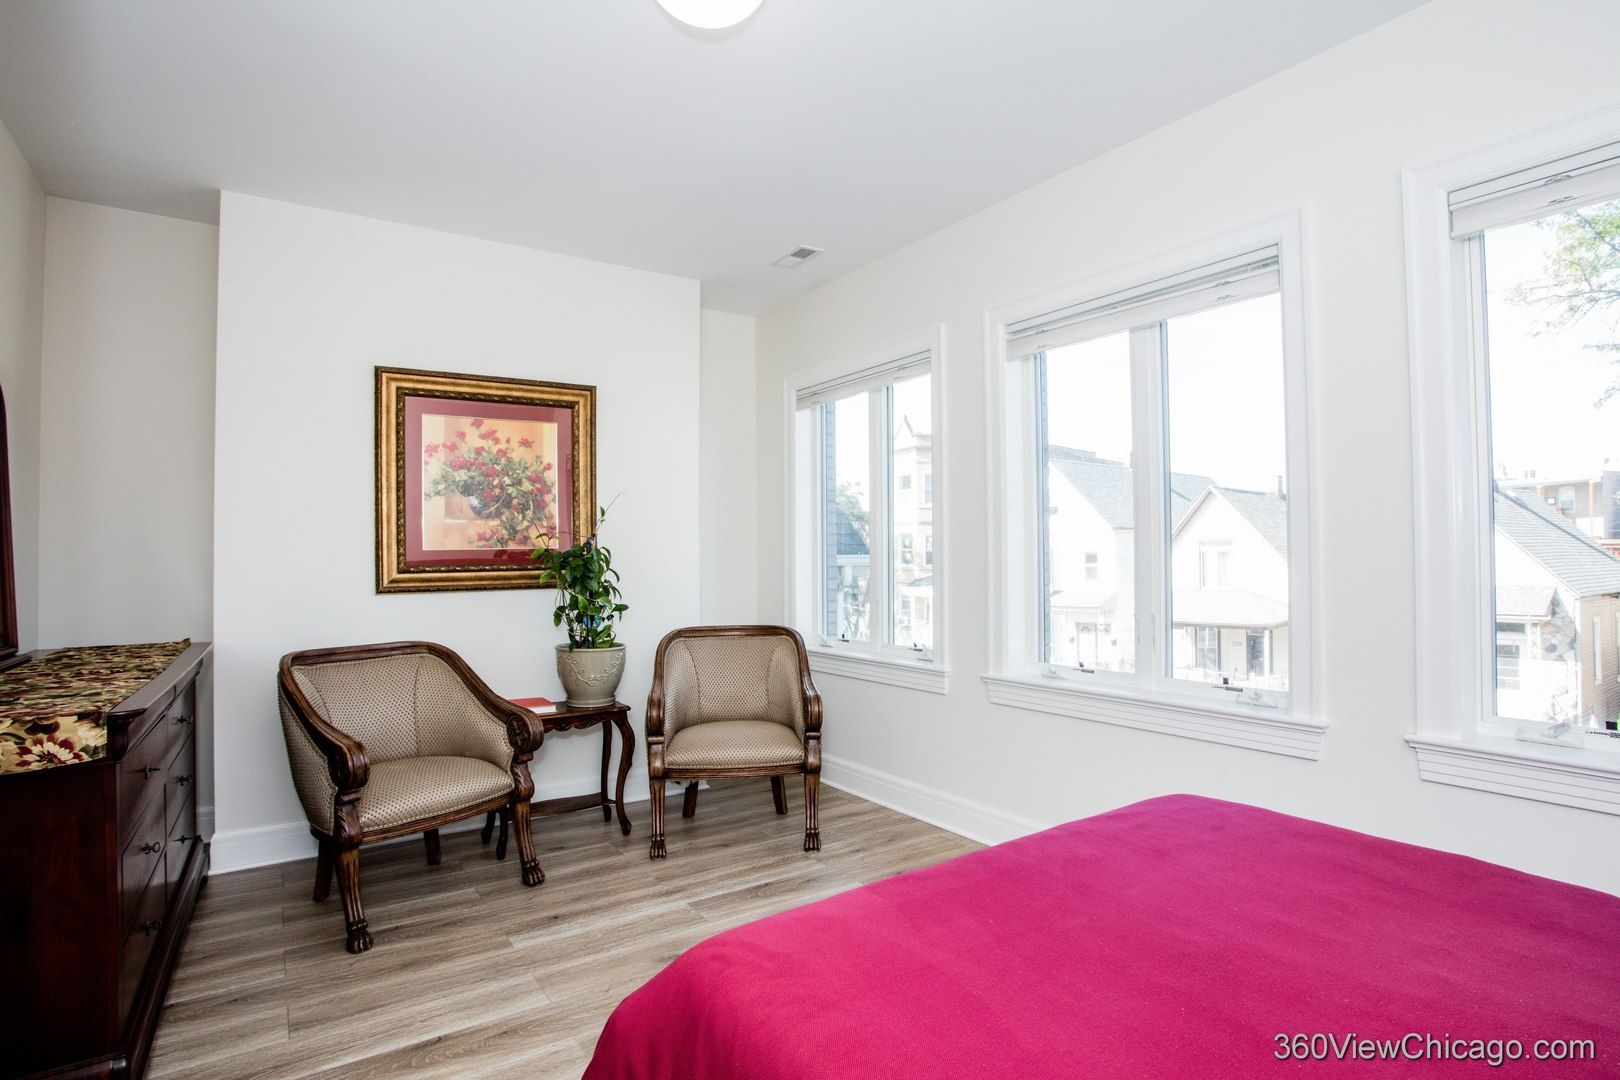 Photo 28: Photos: 1733 Troy Street in Chicago: CHI - Humboldt Park Residential for sale ()  : MLS®# 10911567